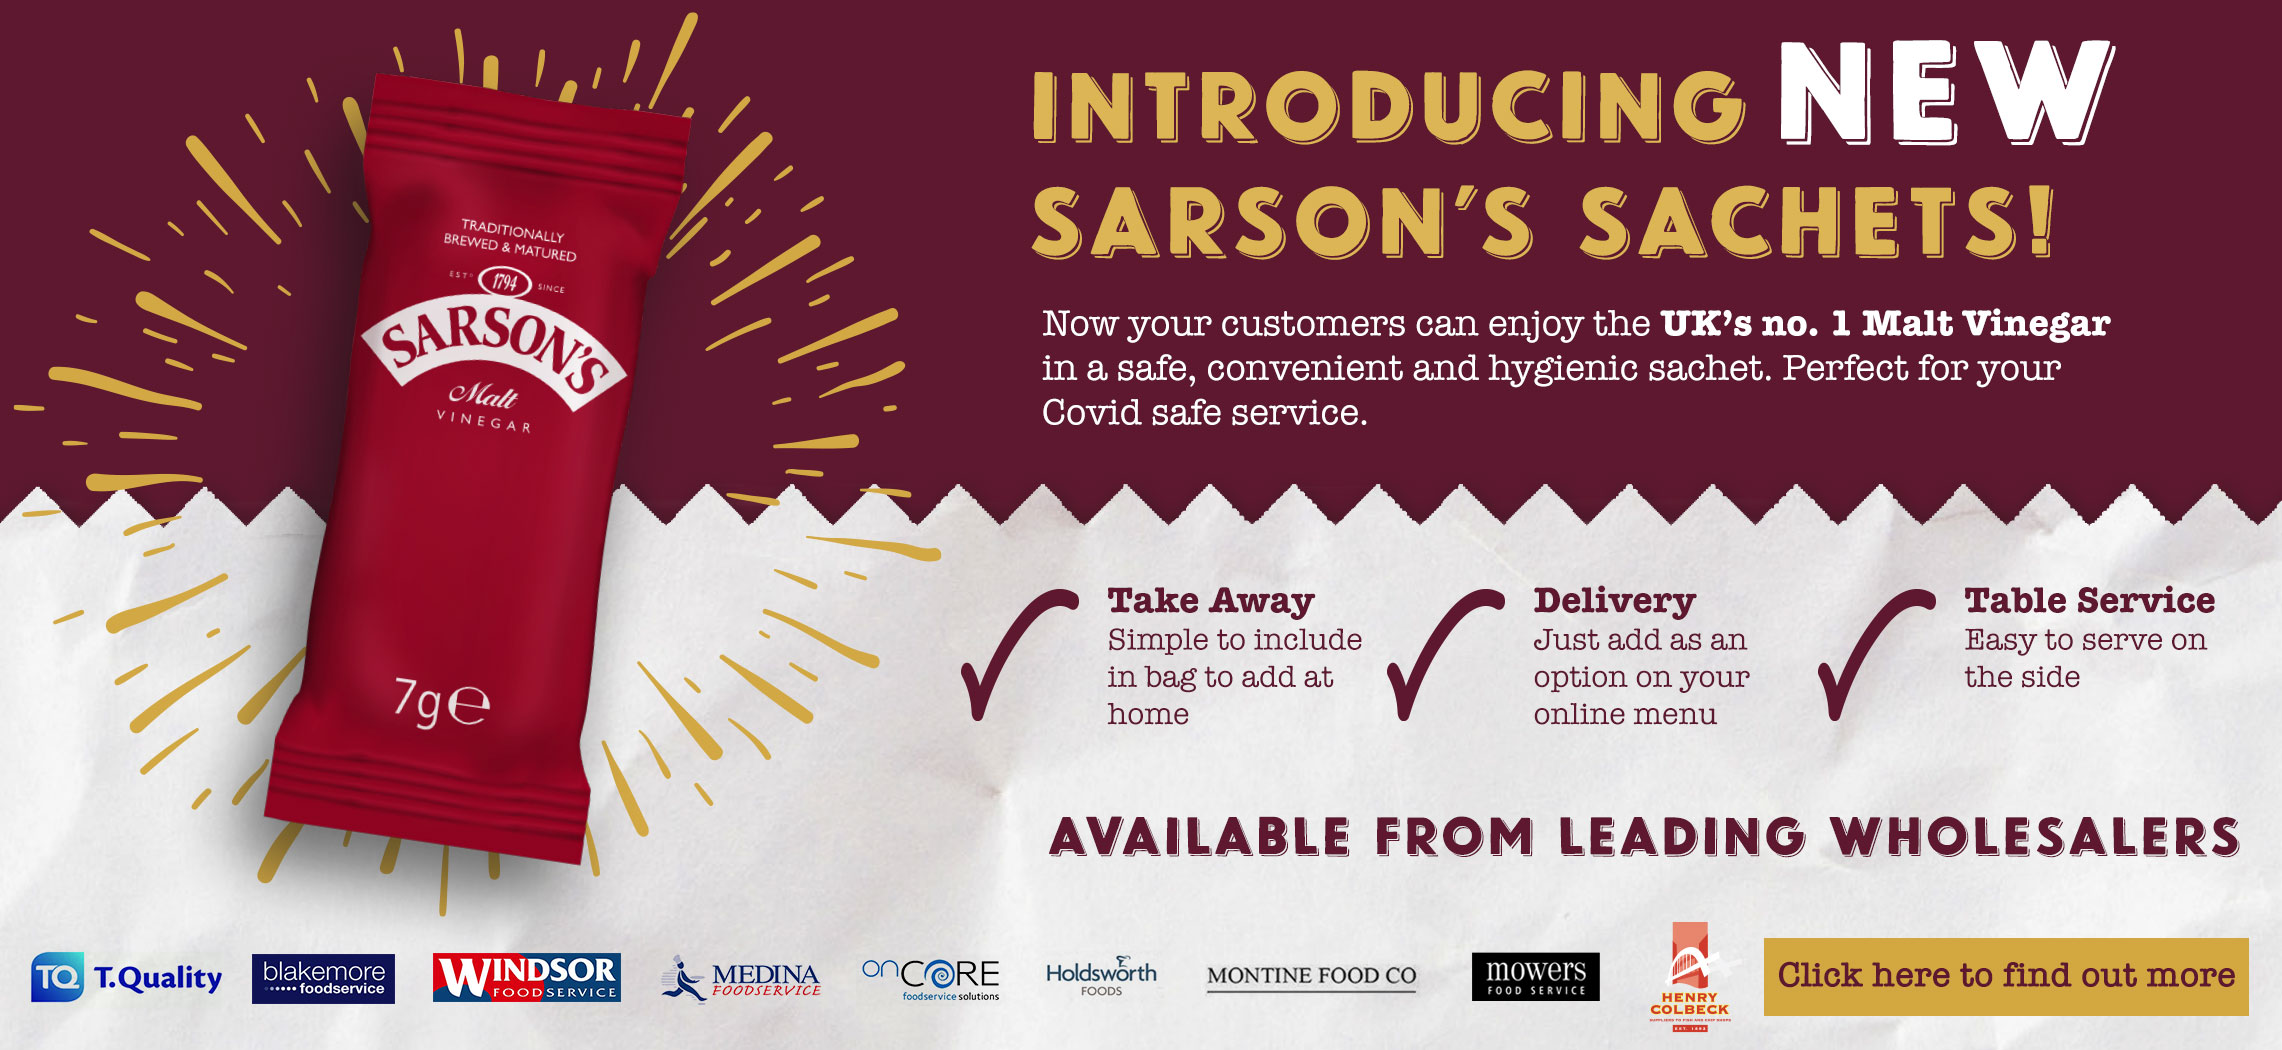 Switch to Sarson's - Proud to Serve Quality Fish and Chips Shops of Great Britain - The Choice of 9 out of 10 Fish and Chips Shops - New Sarson's Sachets